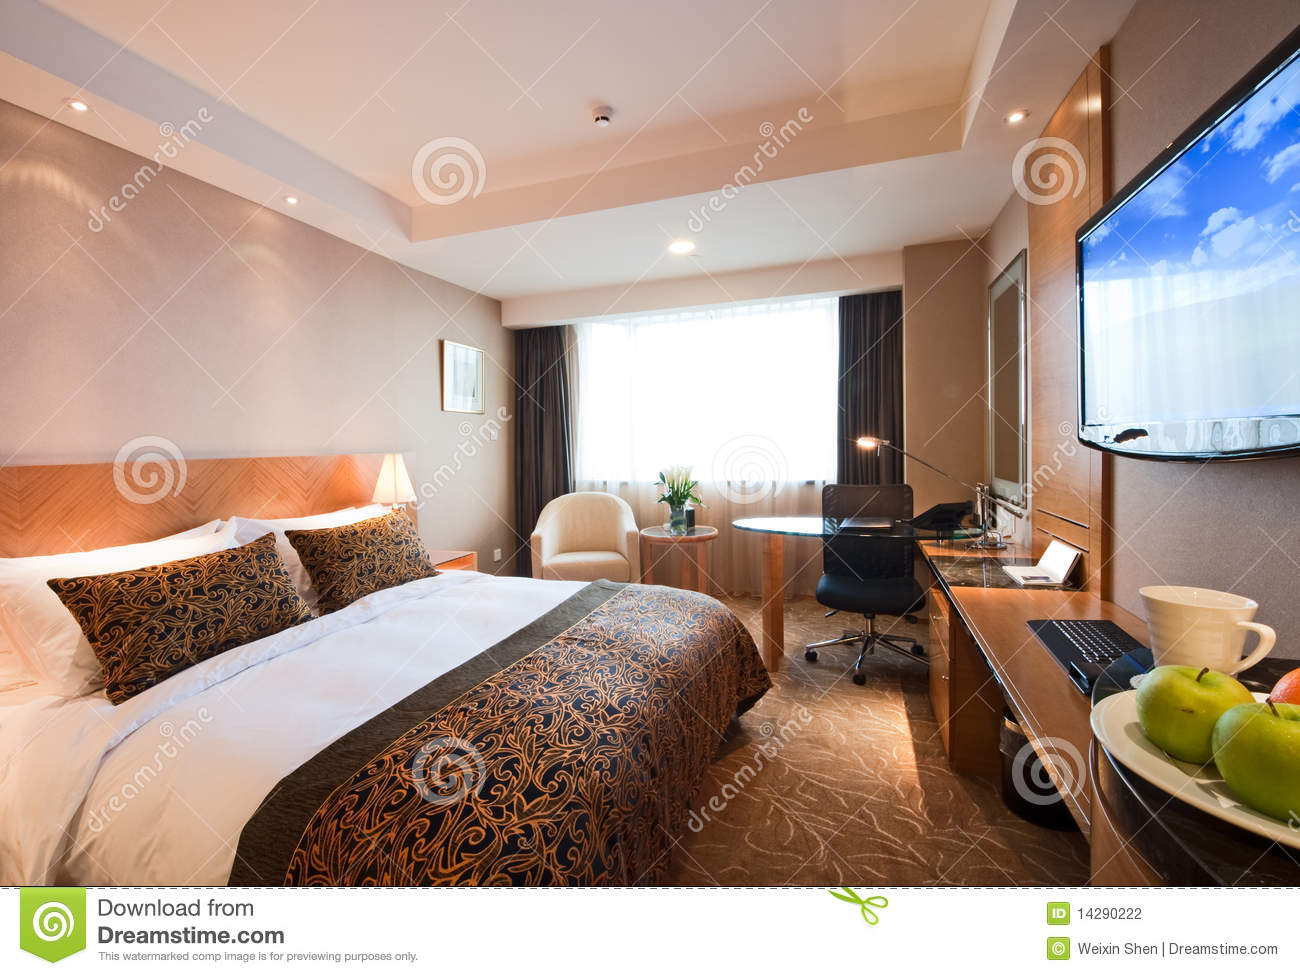 Hotel Rooms Interior the meeting room interior at luxury hotel royalty free stock